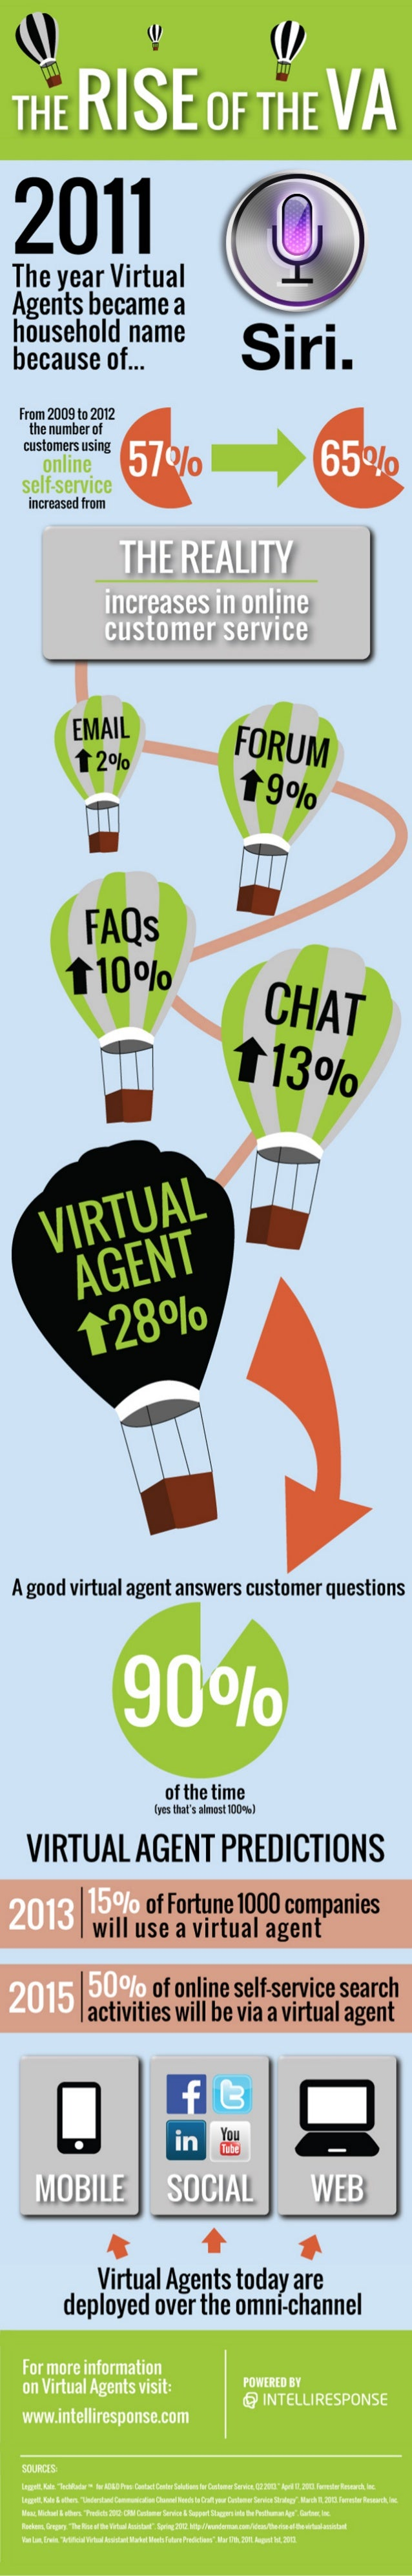 The Rise of the Virtual Agent